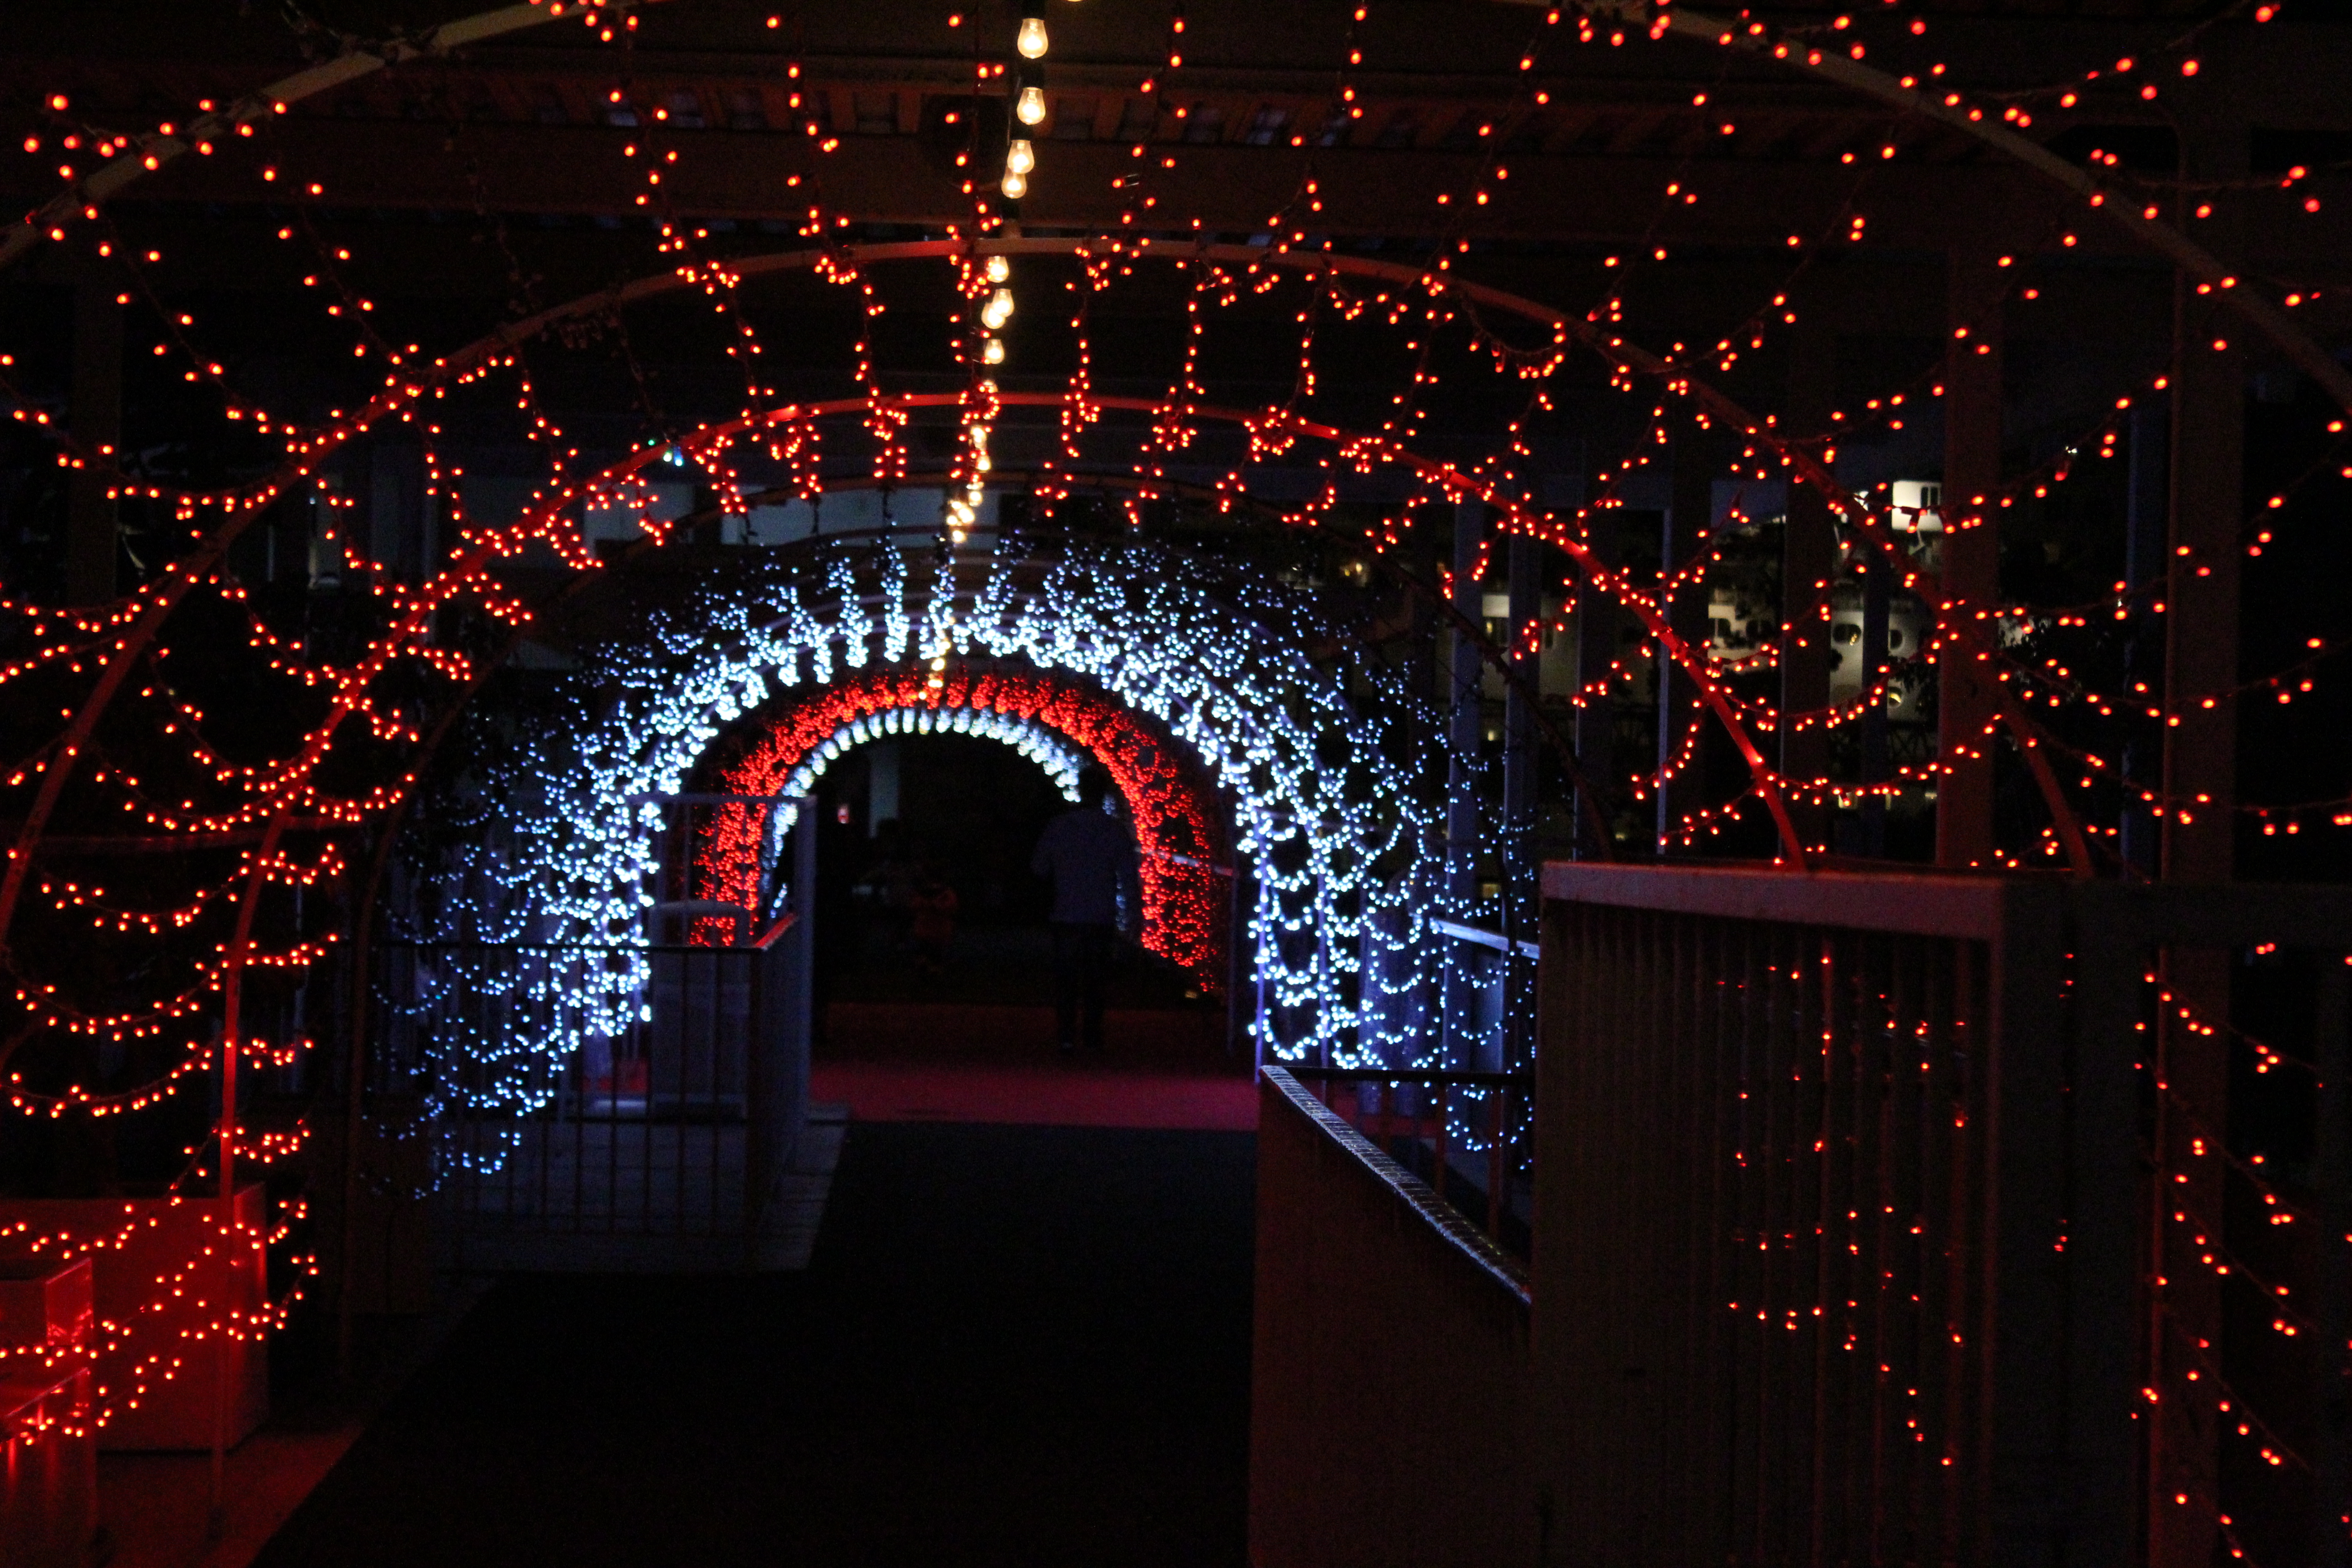 Tunnel of Lights at The Queen Mary Christmas